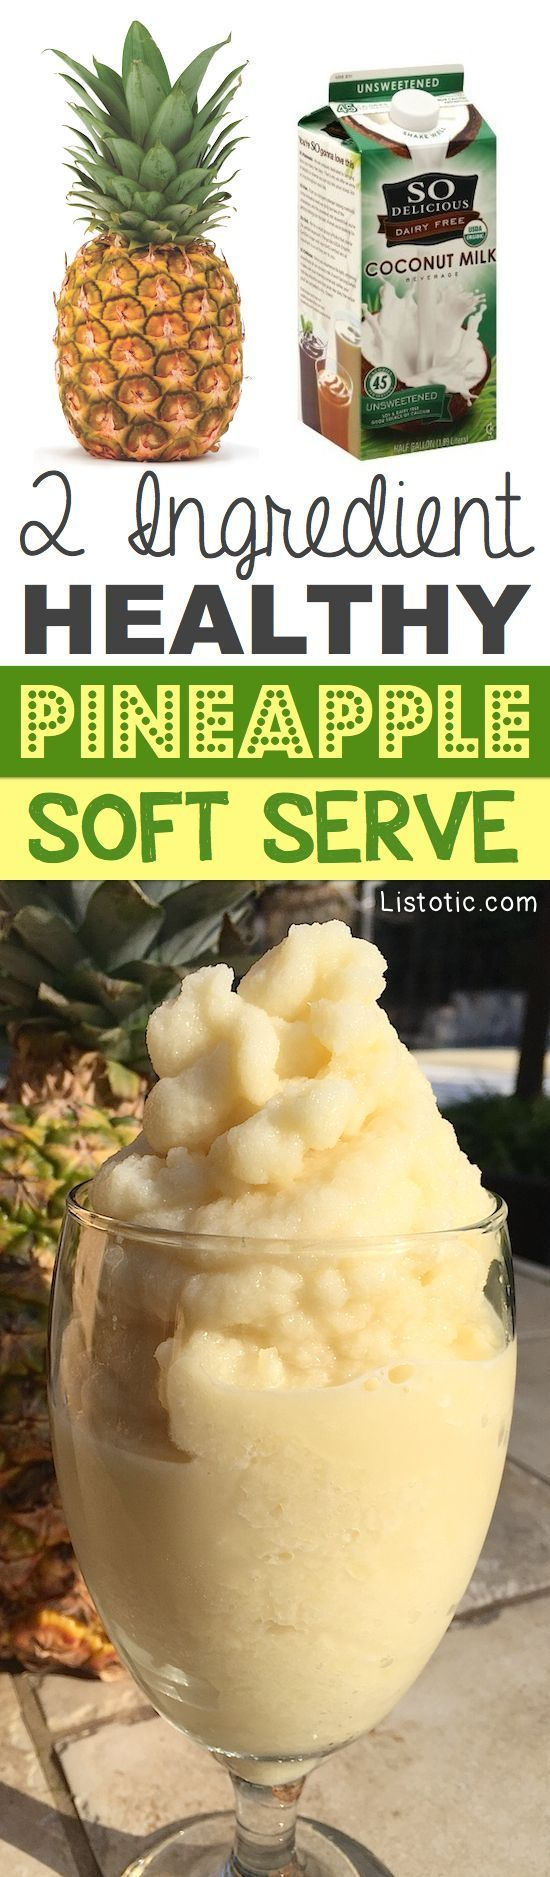 "2 Ingredient Healthy Pineapple ""Soft Serve"" 2 Ingredient, easy, dairy-free, healthy pineapple soft serve like dessert! This healthy snack recipe is similar to a smoothie but thicker and creamier. It's the perfect guilt-free treat!"